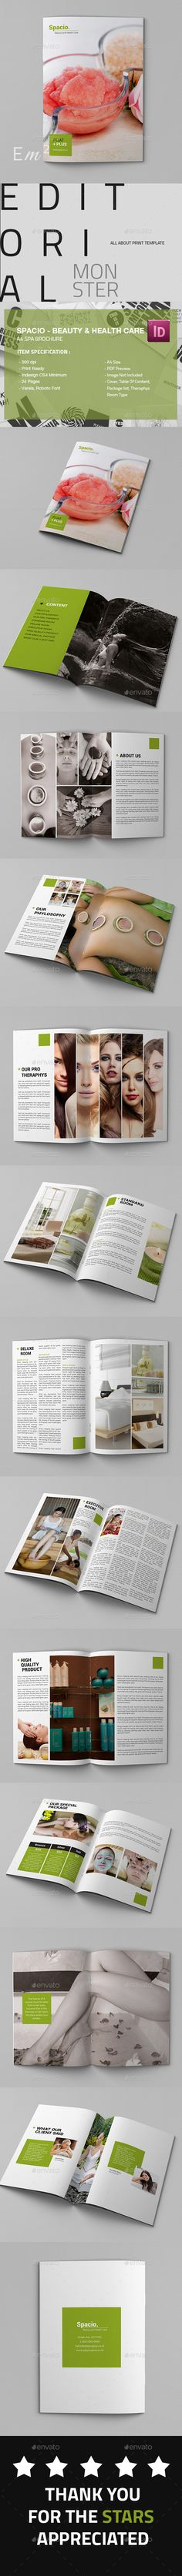 Spacio ¨C Spa Beauty and Health Care A4 Brochure is a beauty brochure fit for any kind of beauty industry, such as : salon, spa, sa